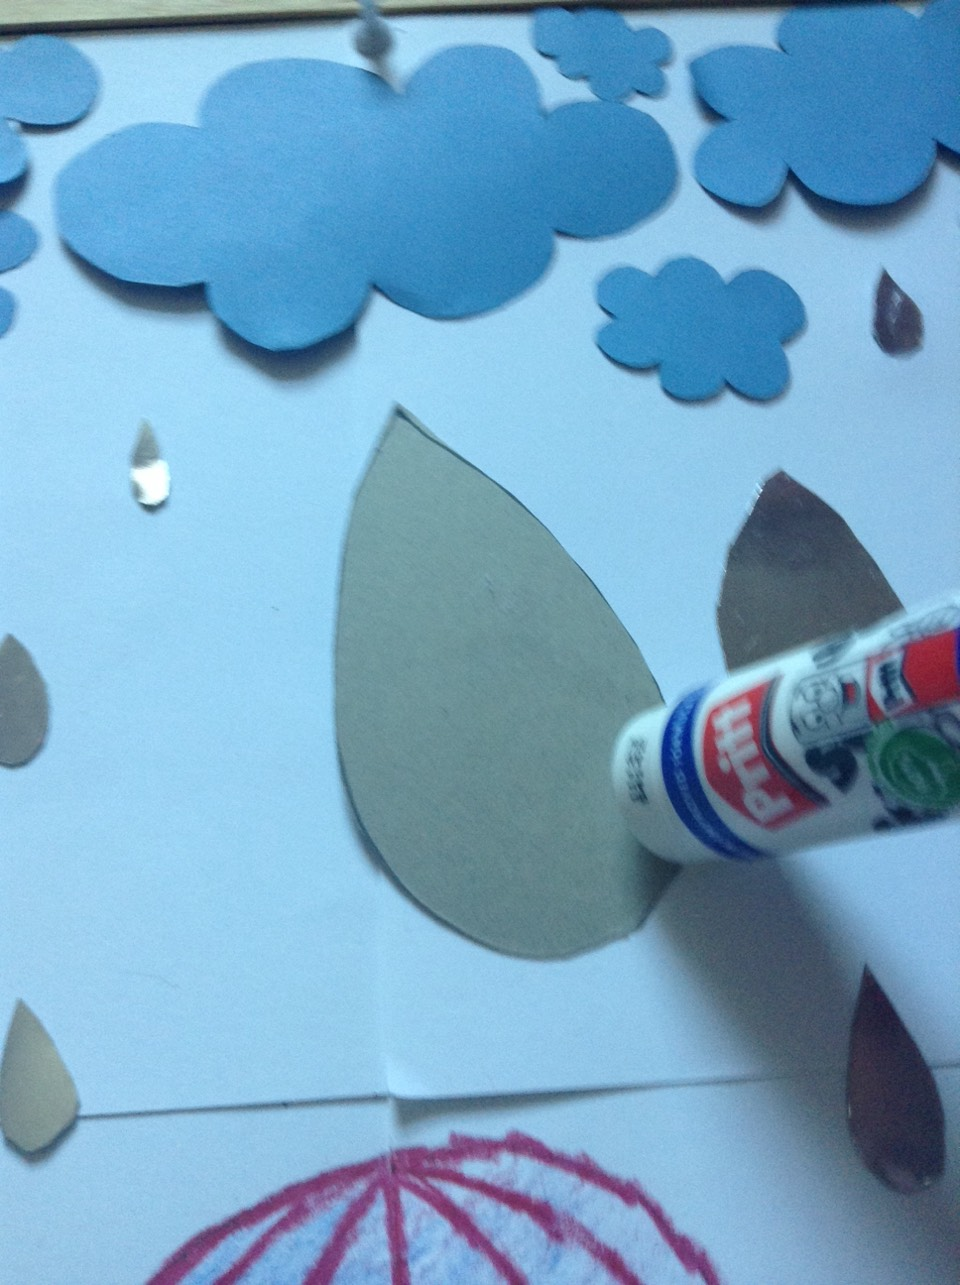 Glue on raindrops with pritt-stick